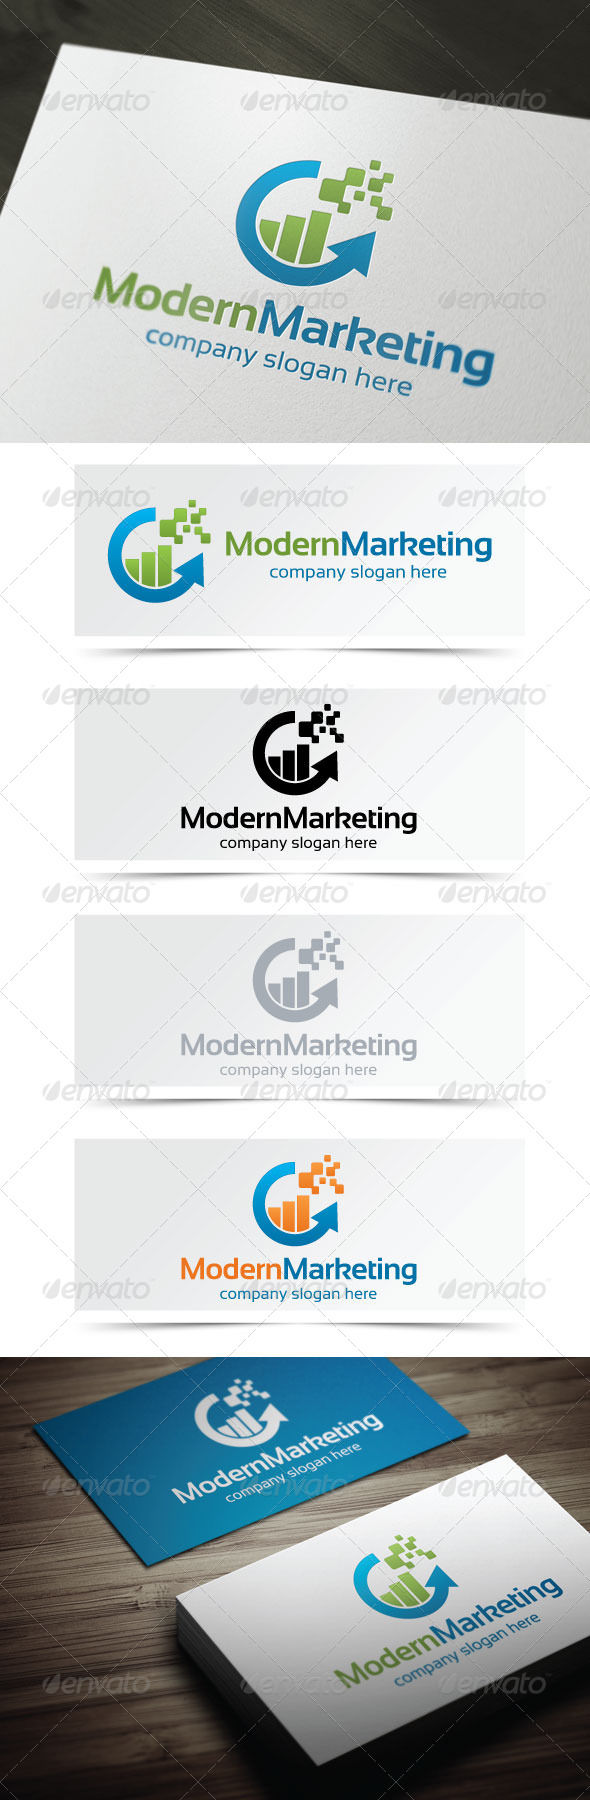 GraphicRiver Modern Marketing 4894903